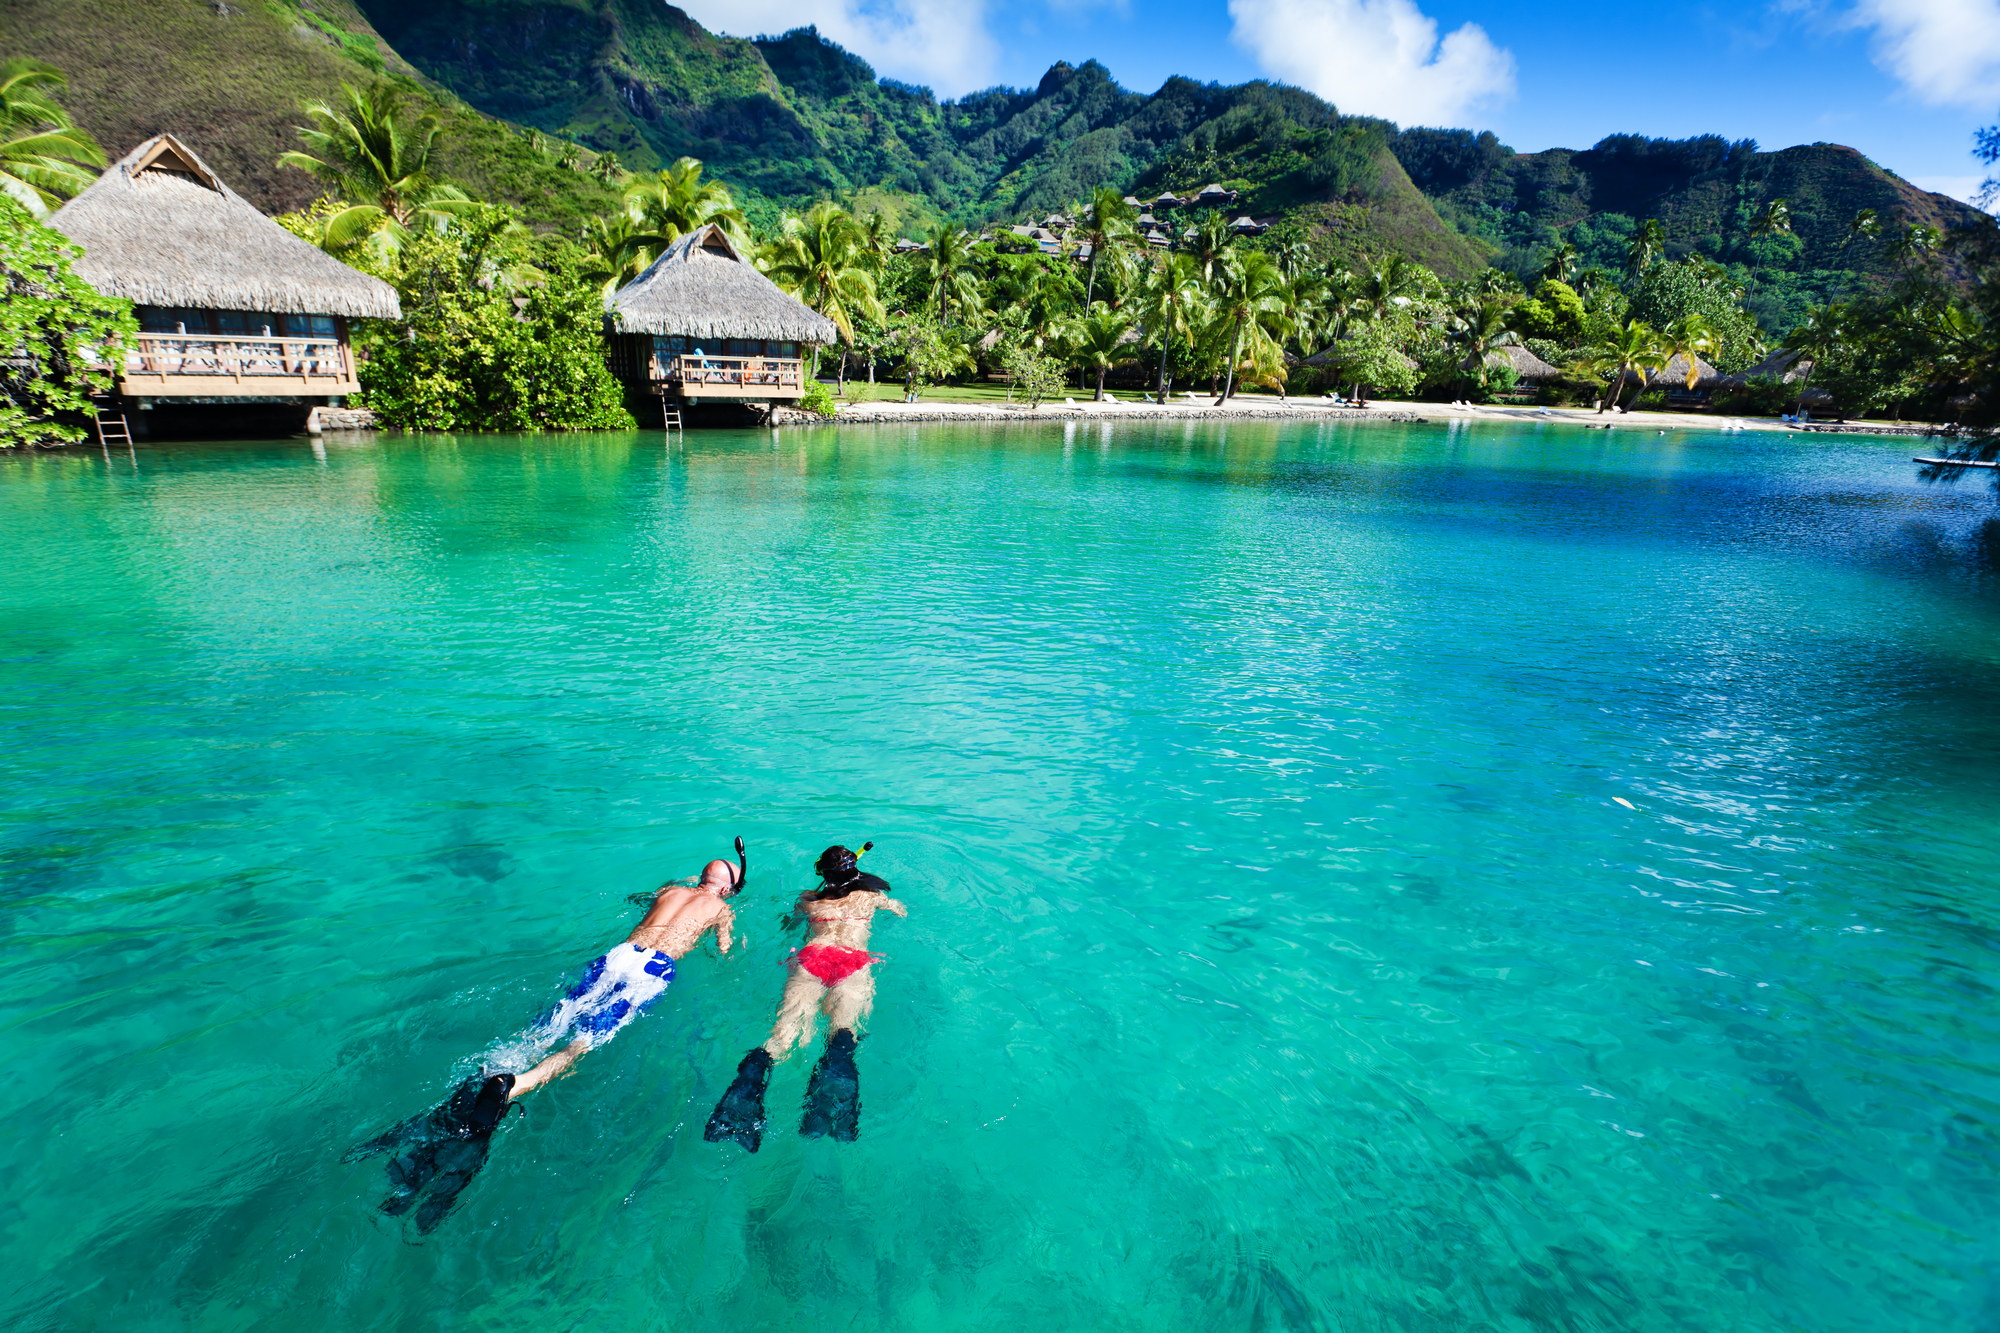 Tahiti Reopening-Covid-19 Travel Protocols